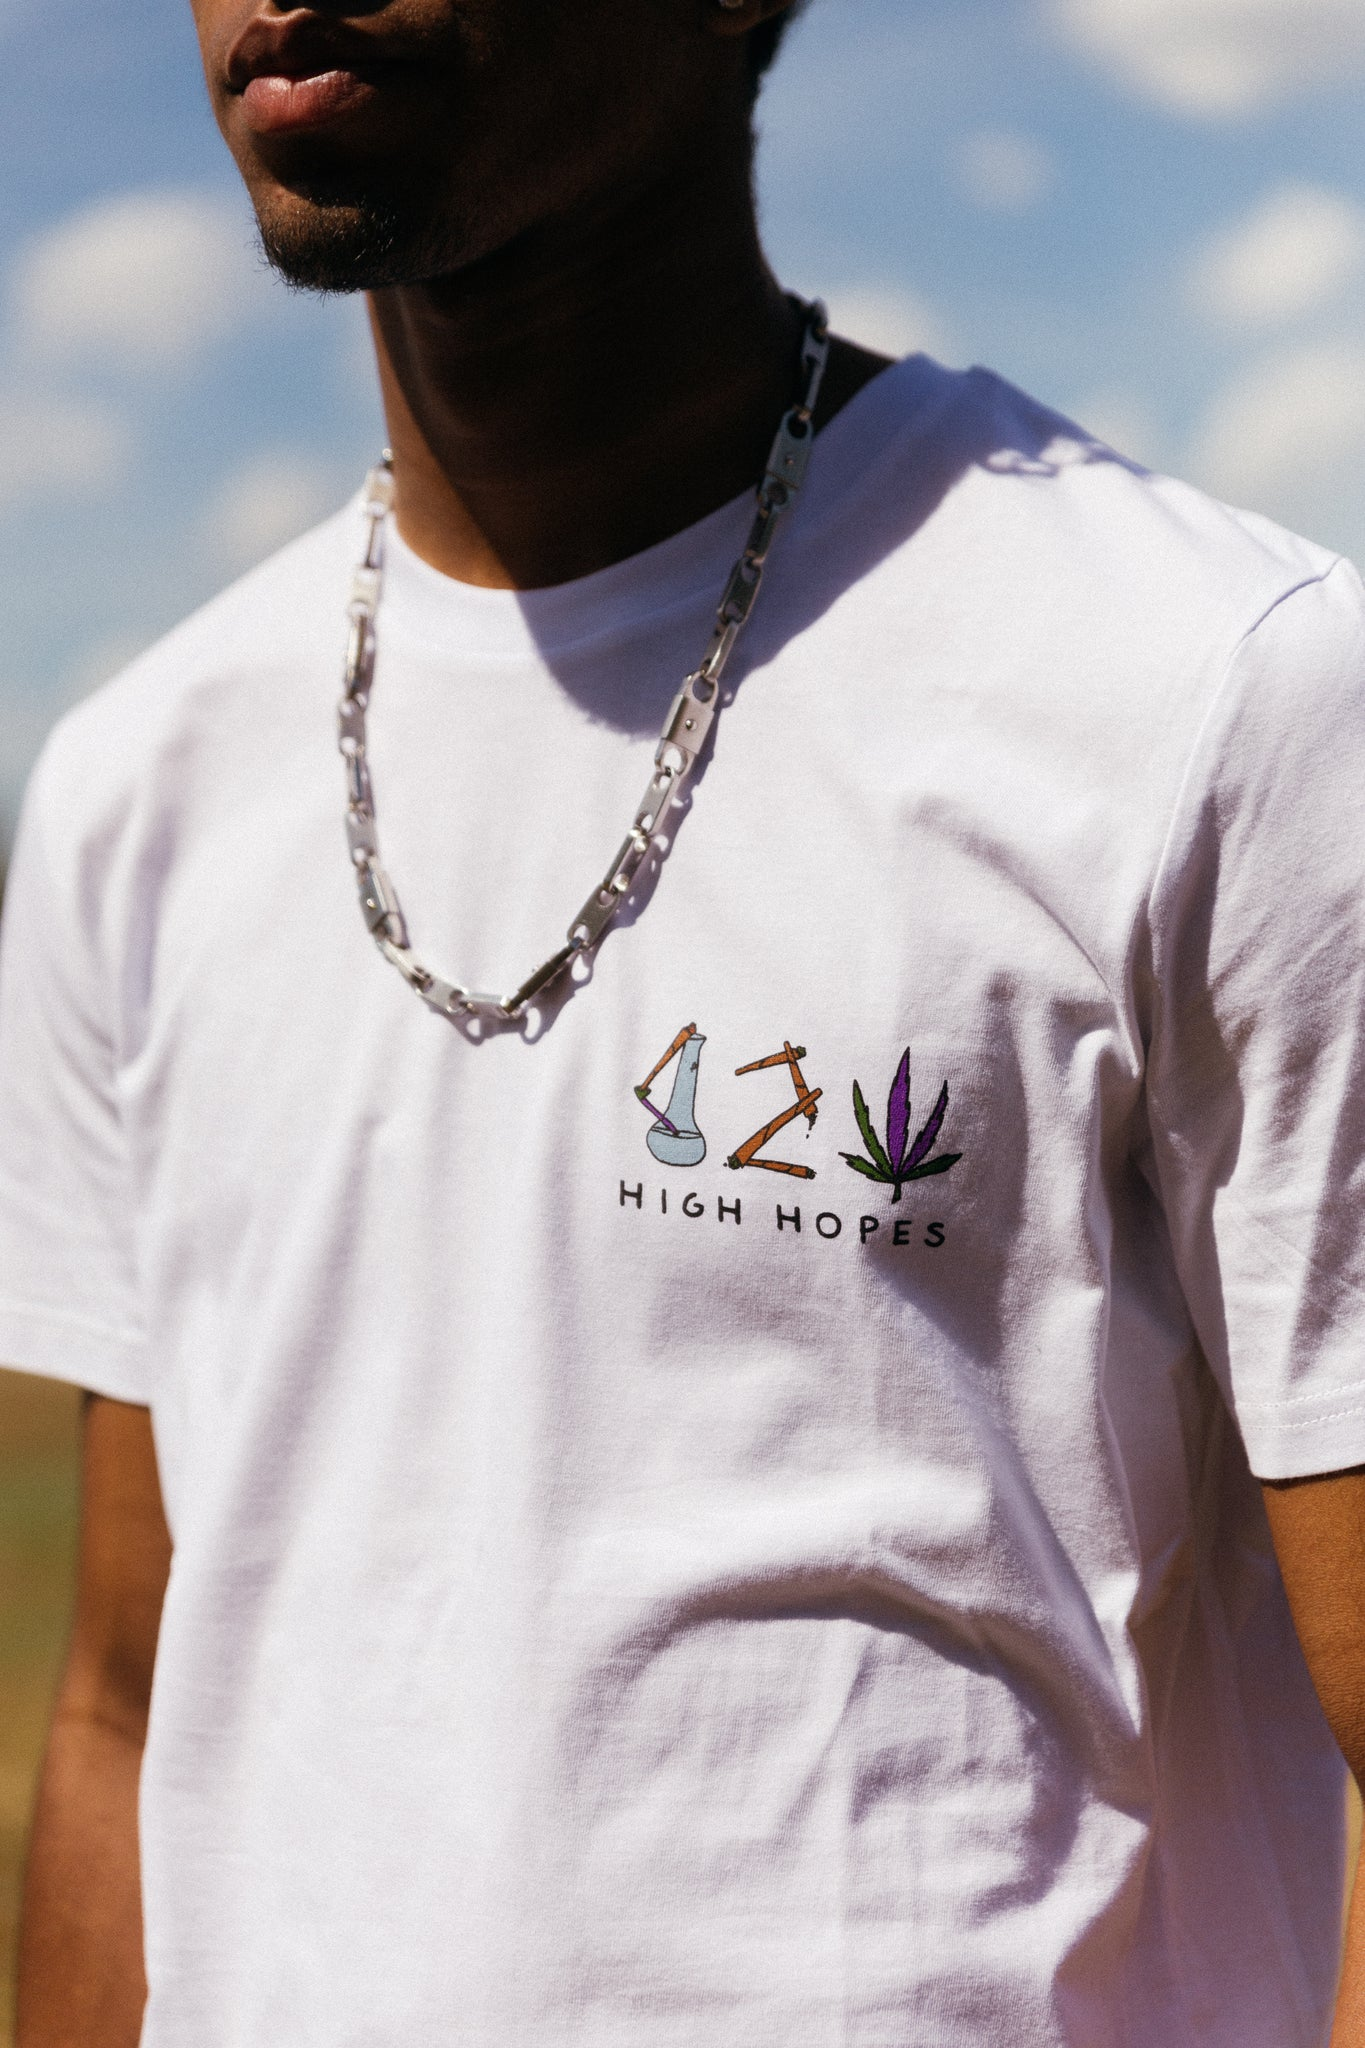 420 Shirt (Limited edition)